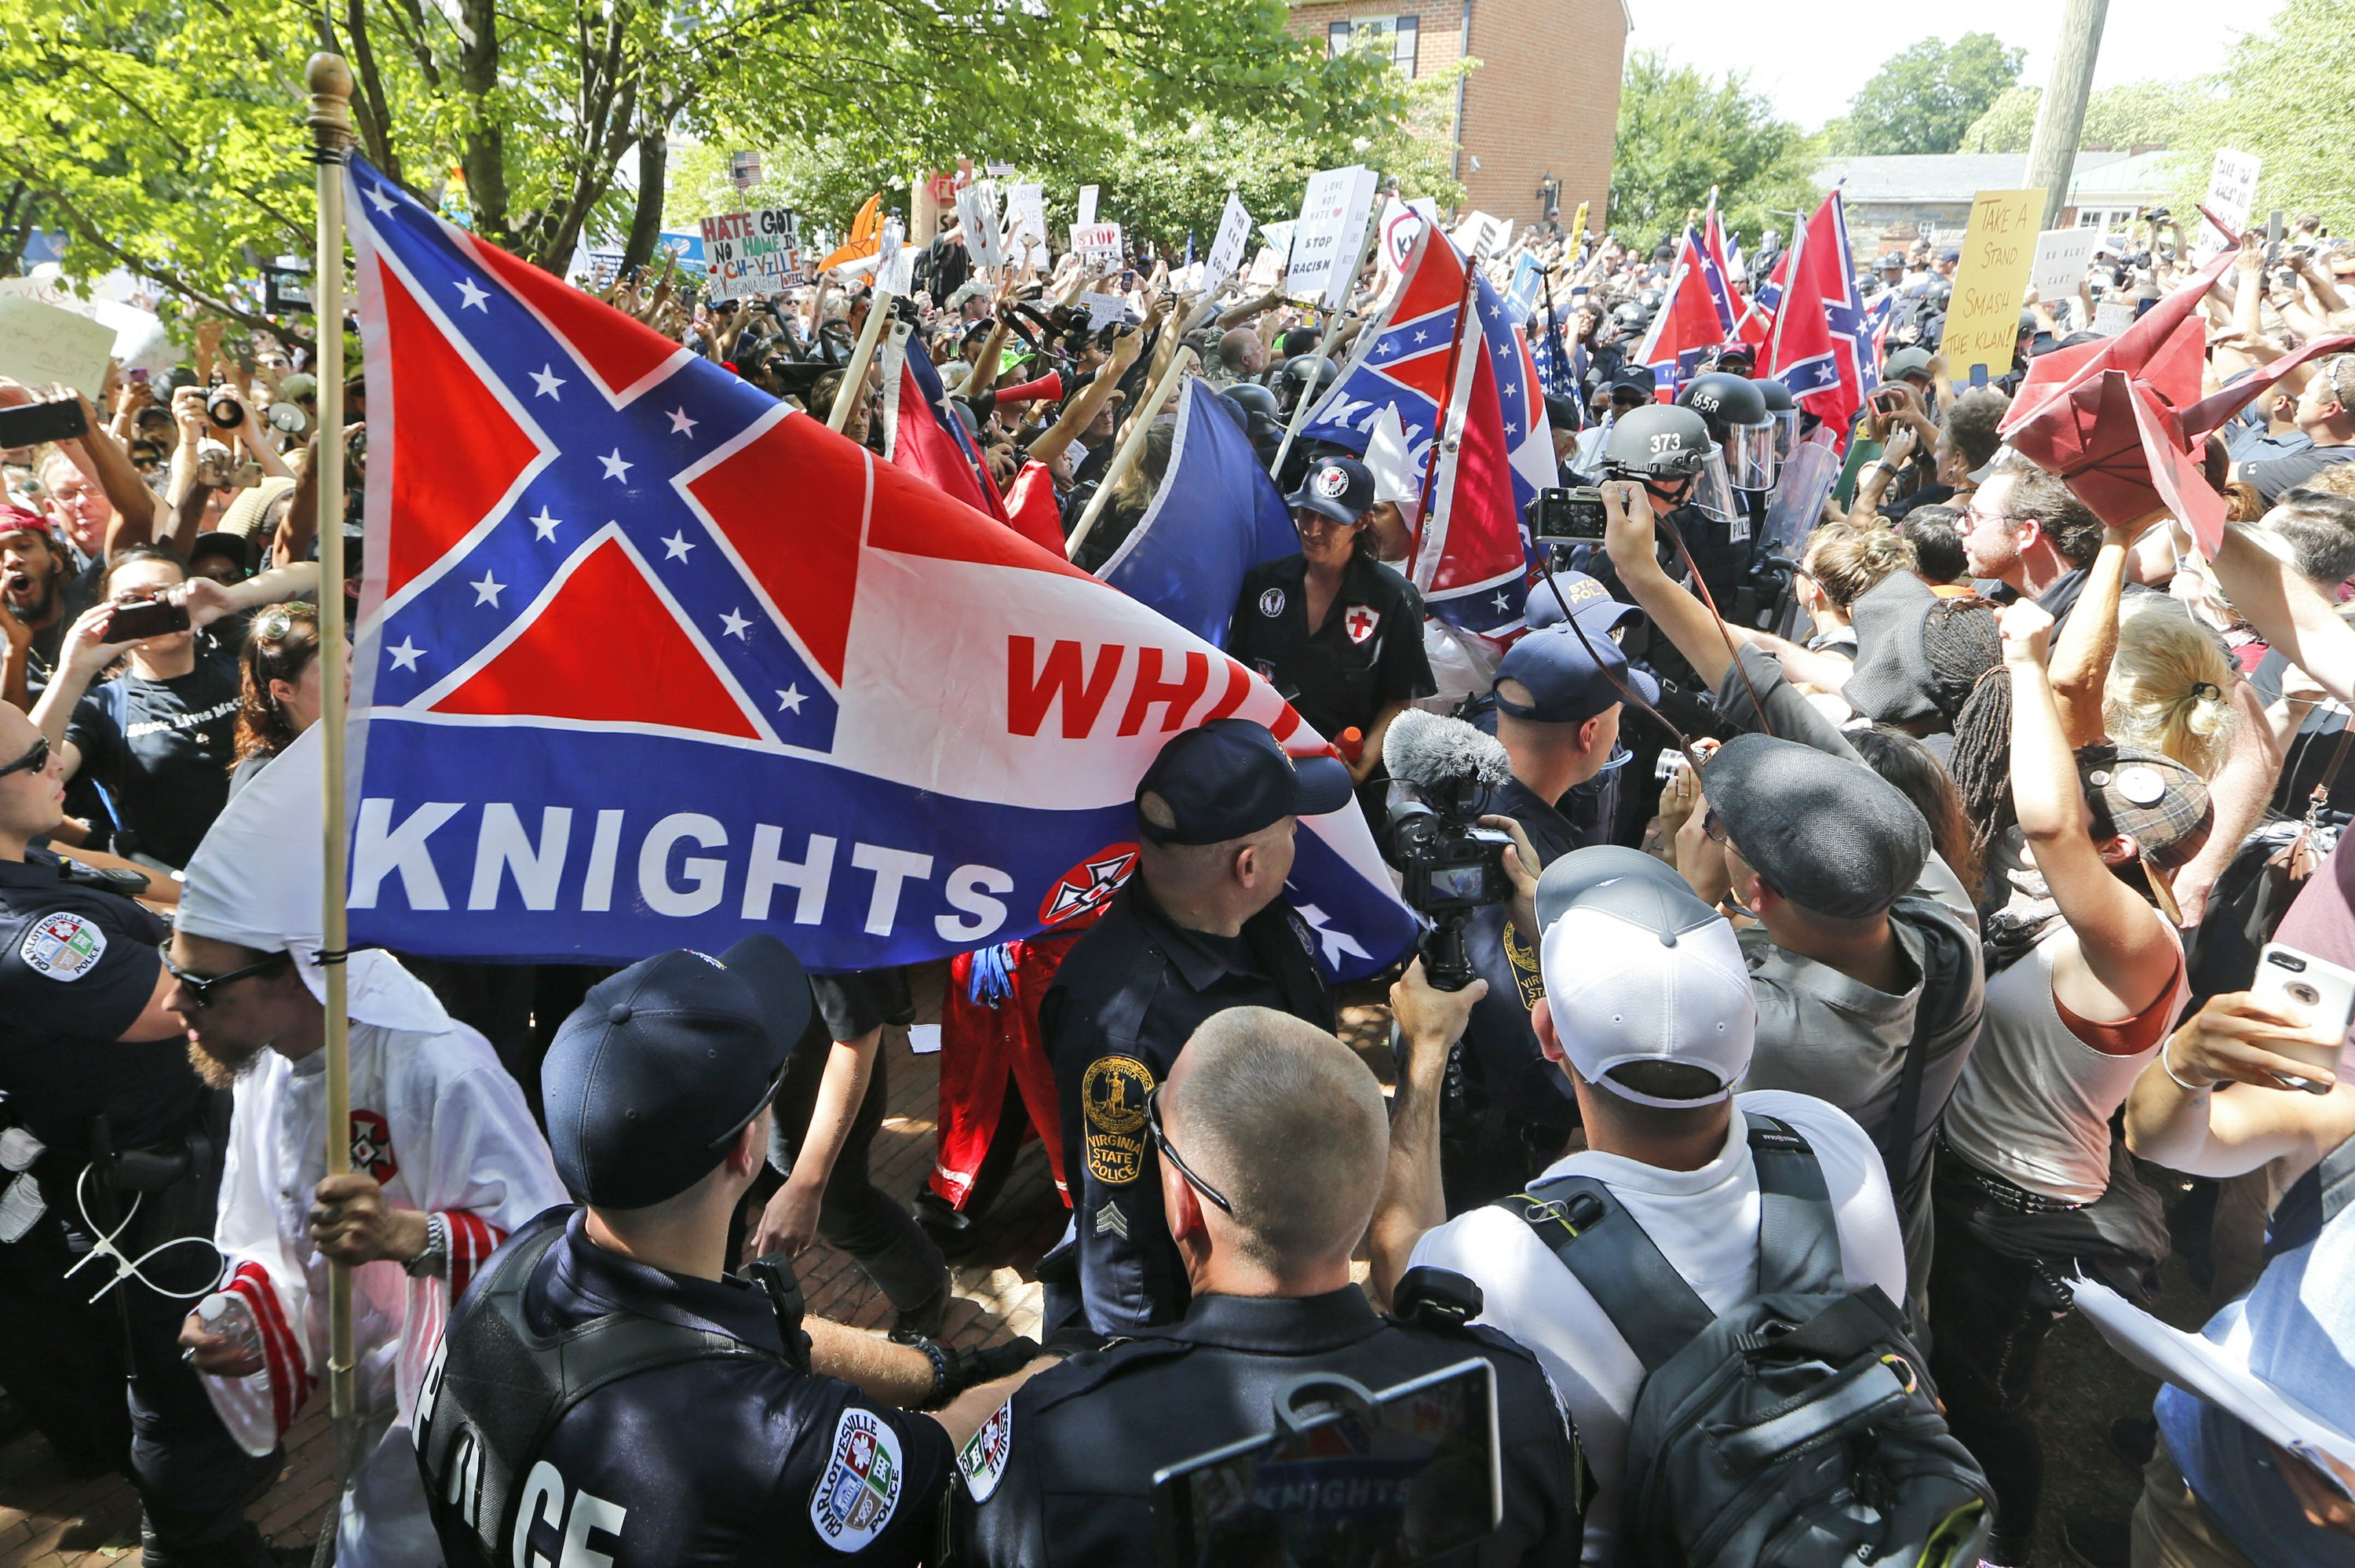 Secessionists push for South to break away from US again